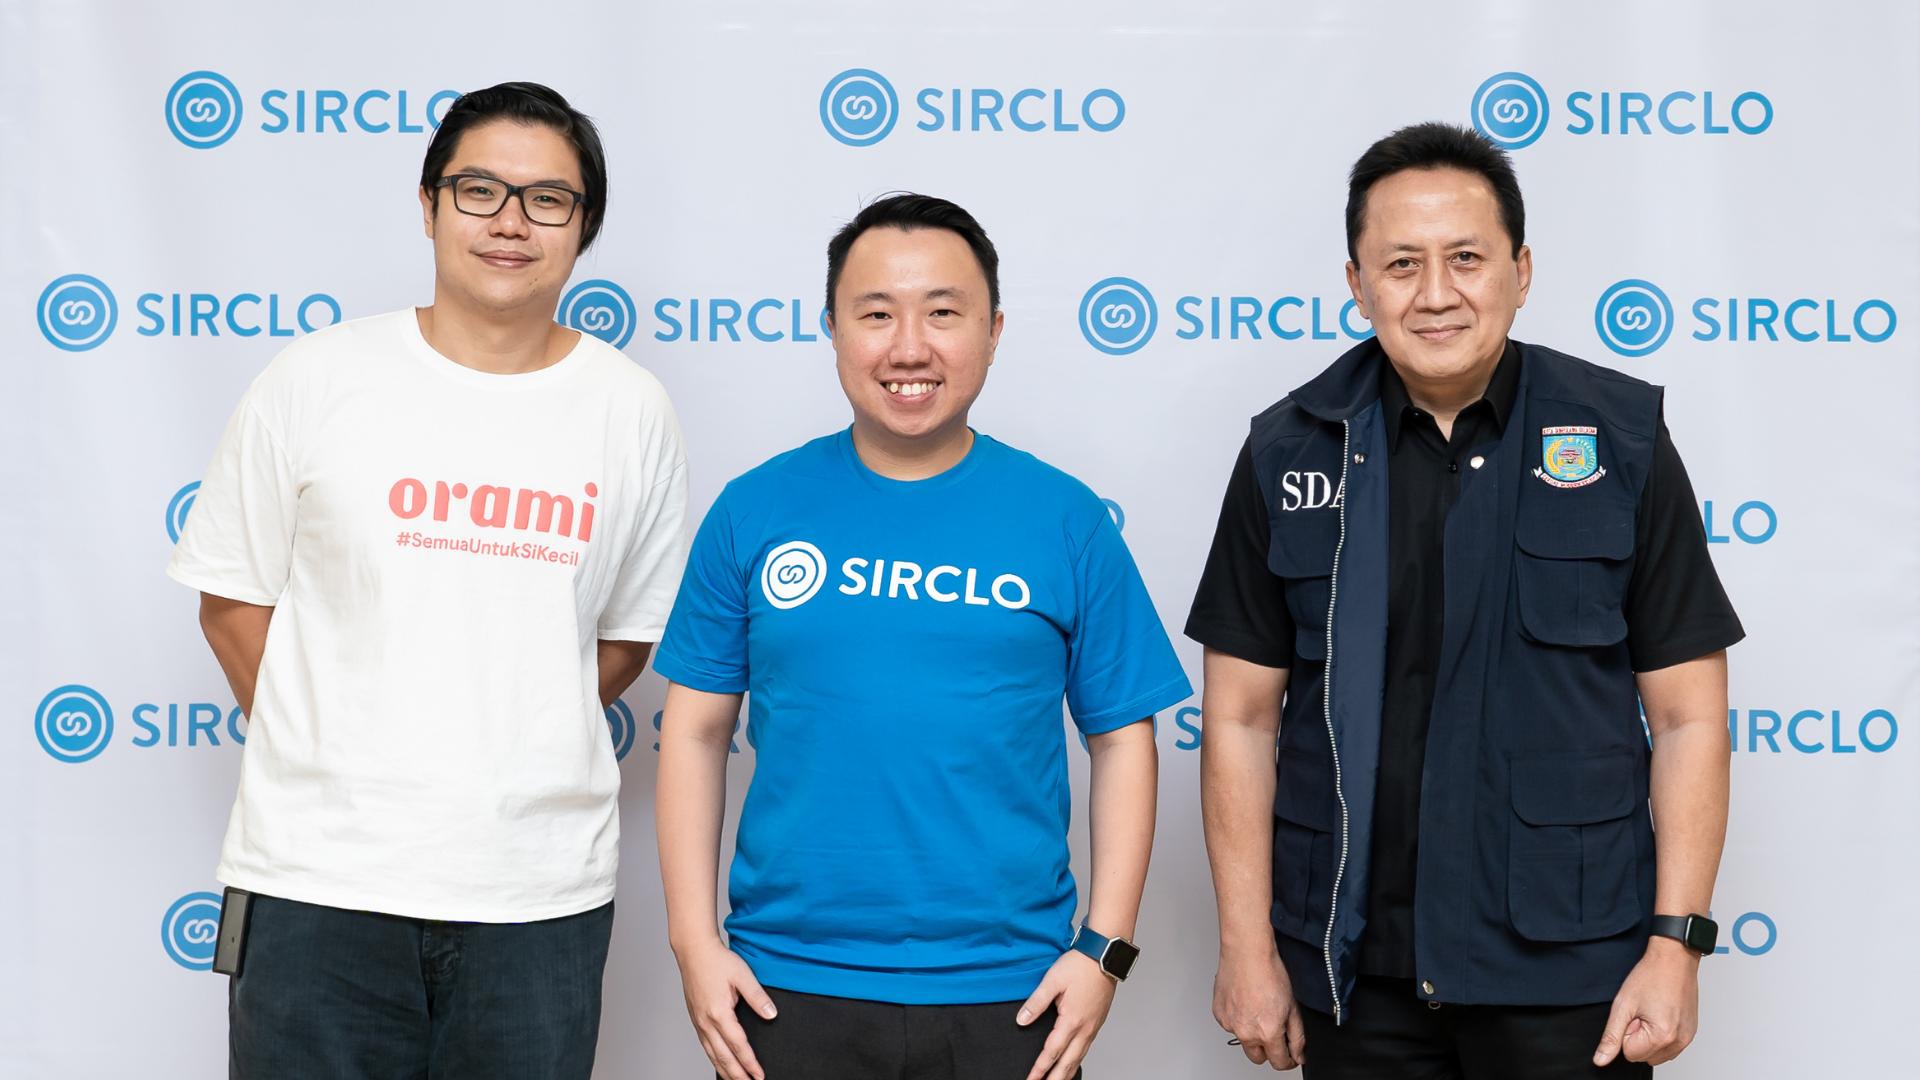 SIRCLO Acquires Orami To Strengthen Omnichannel Services for Brands and SMEs